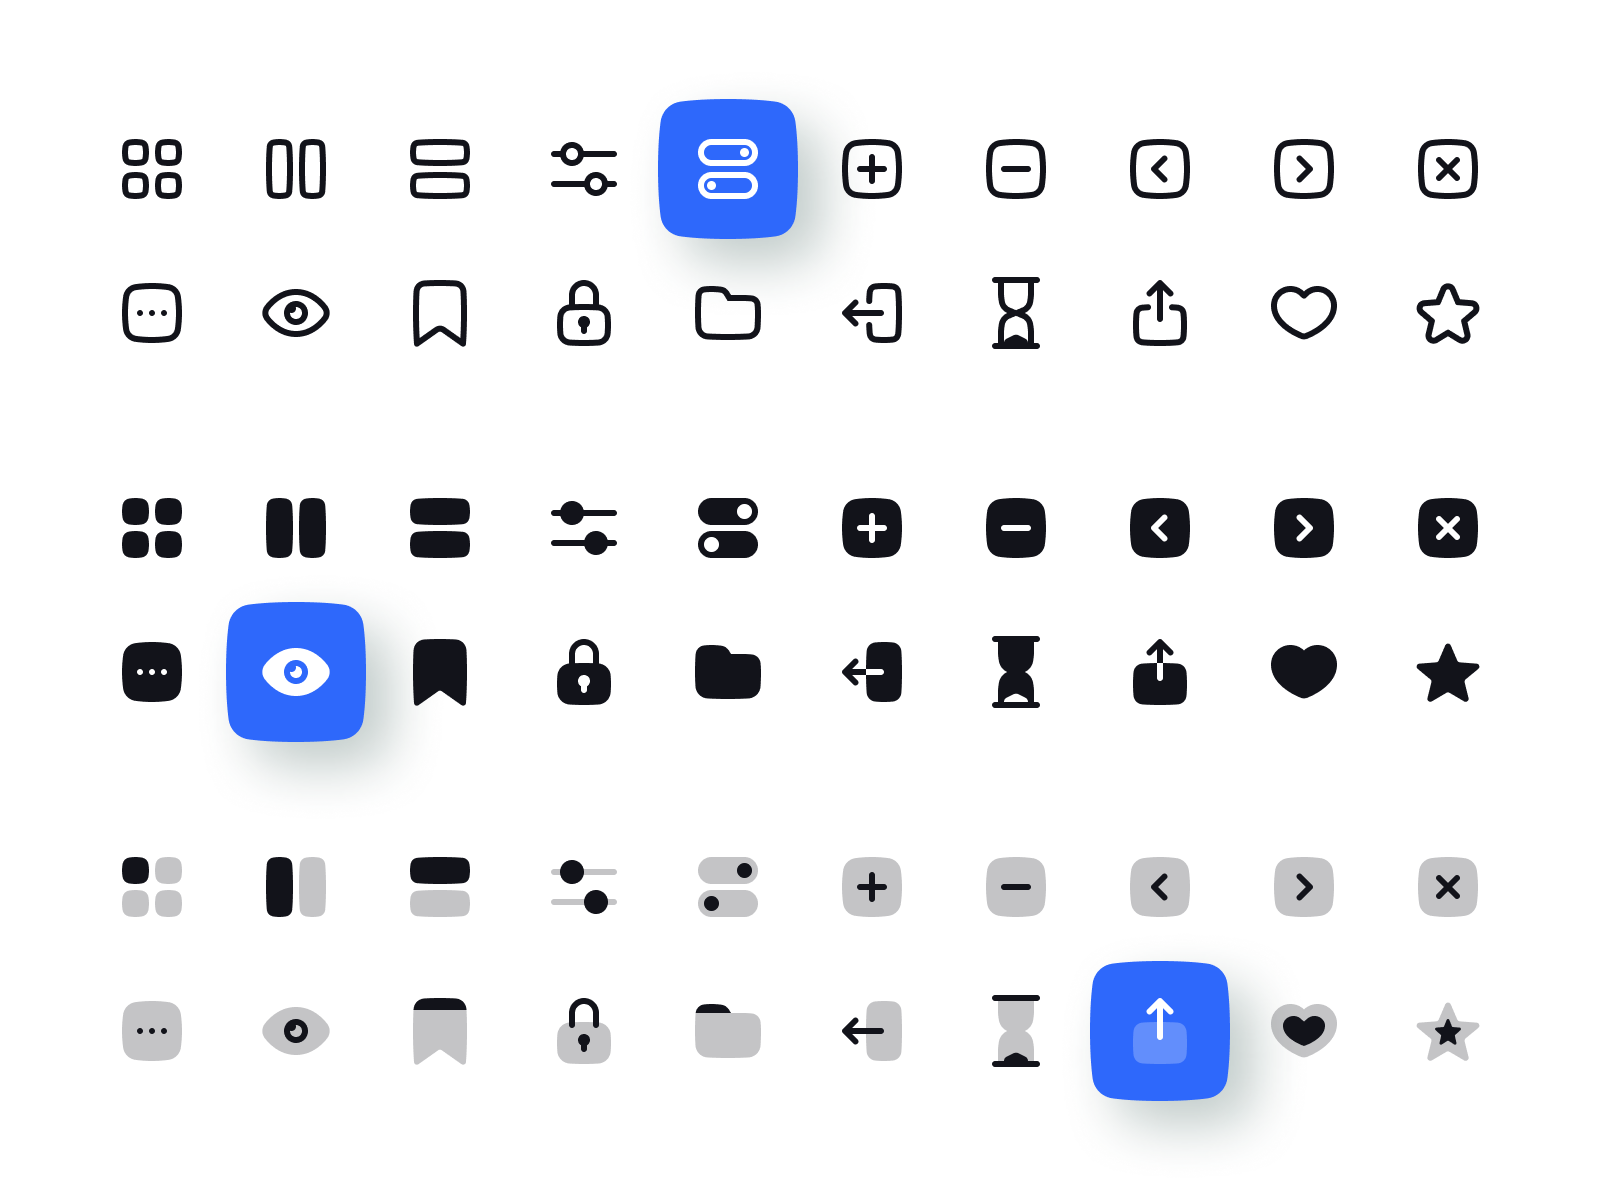 user interface icon set by dima groshev on dribbble user interface icon set by dima groshev